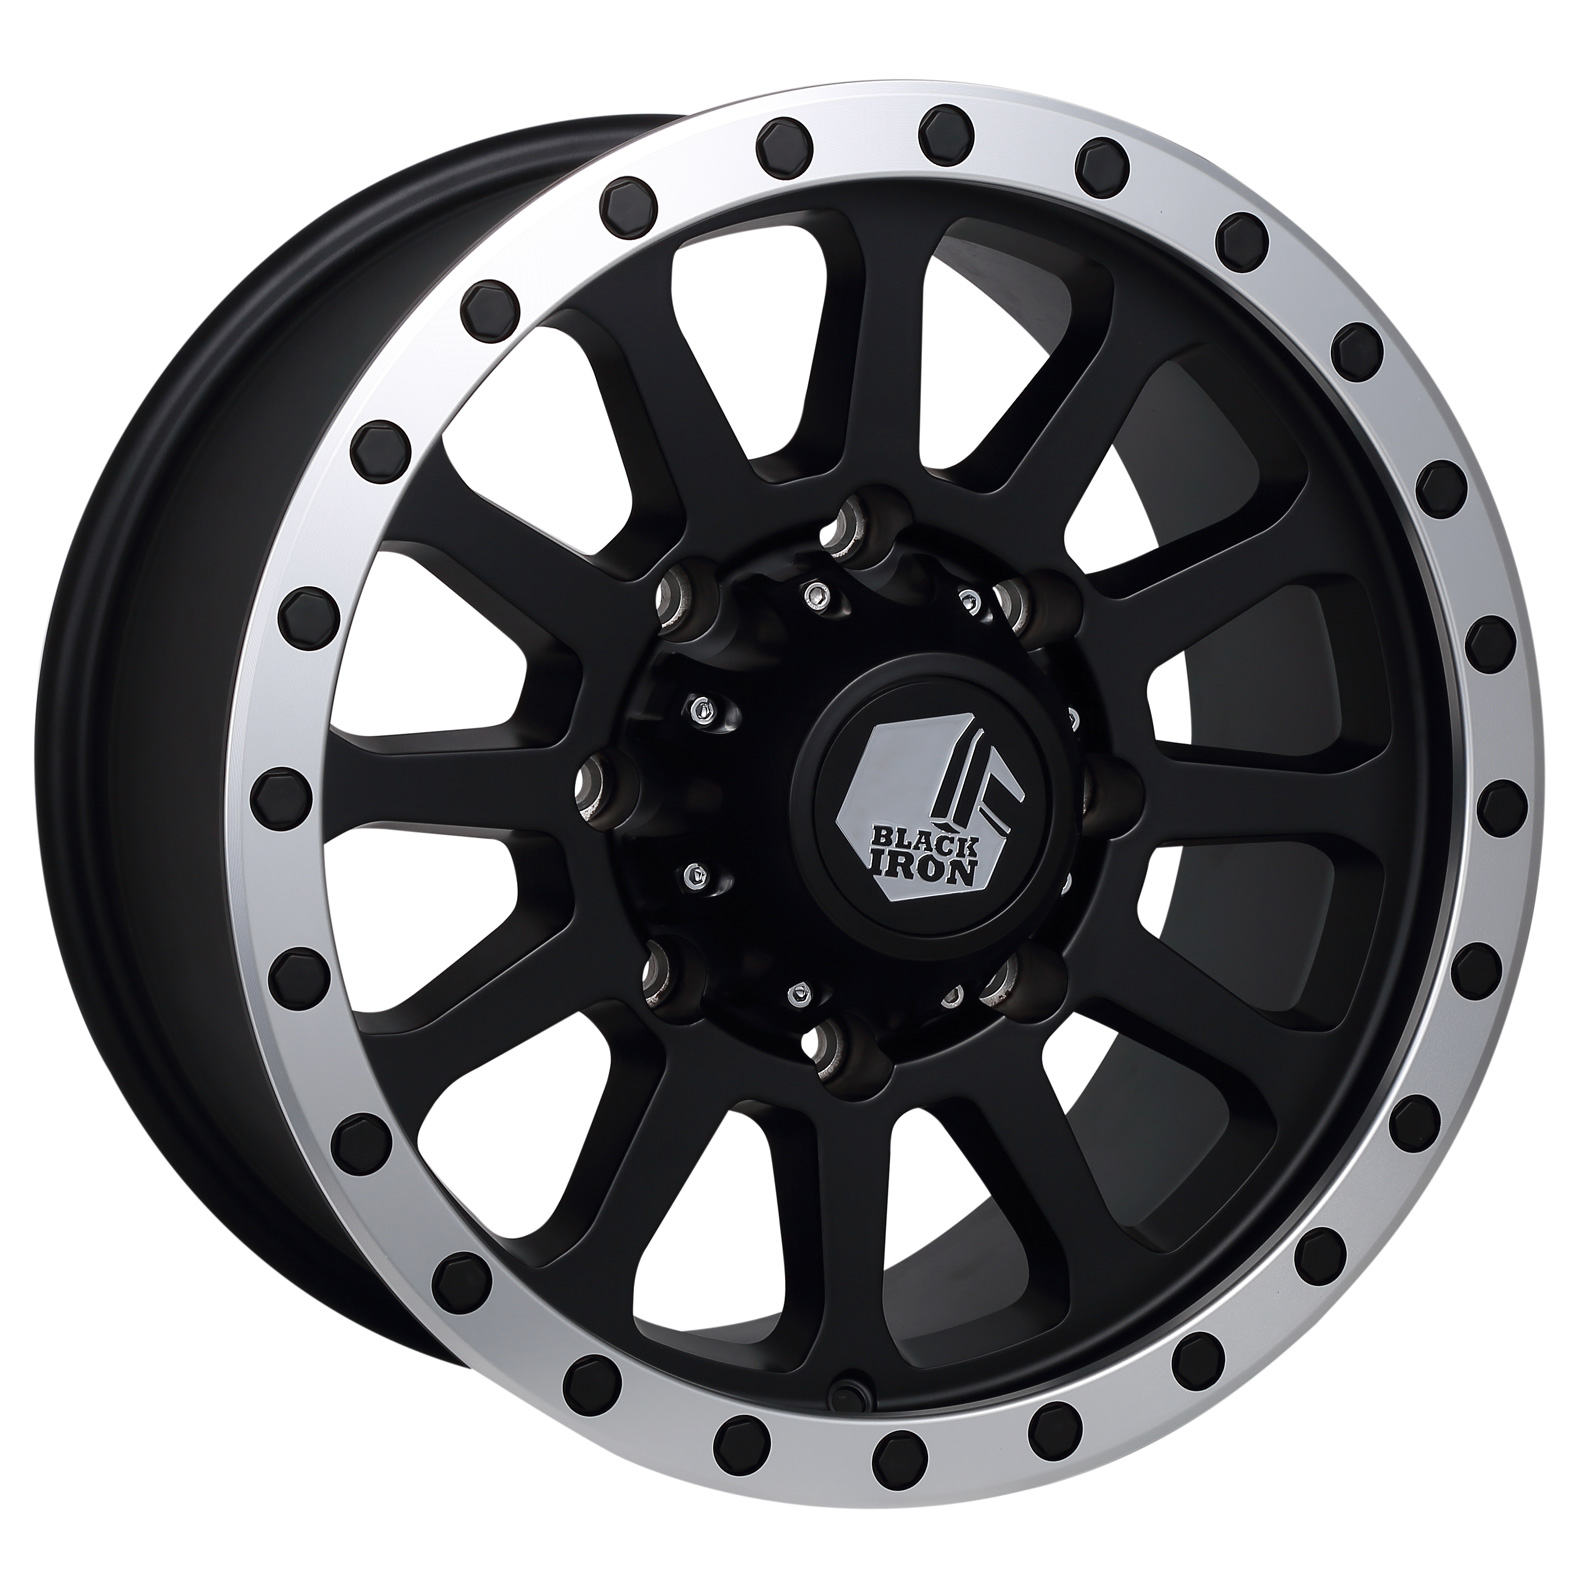 Black Iron Taiga Black Satin Wheel